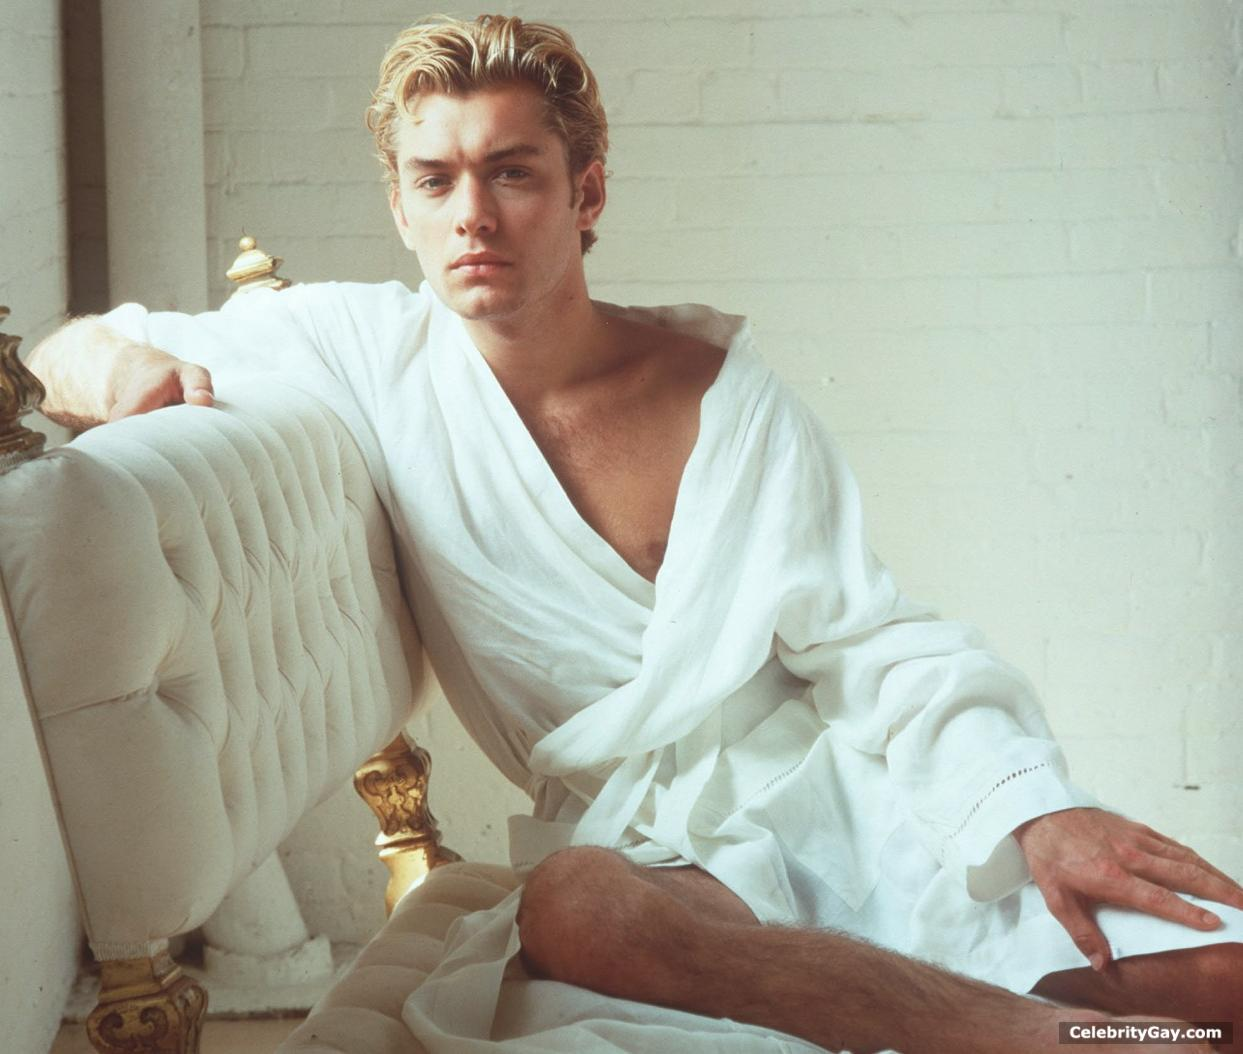 Jude Law Nude - leaked pictures & videos | CelebrityGay